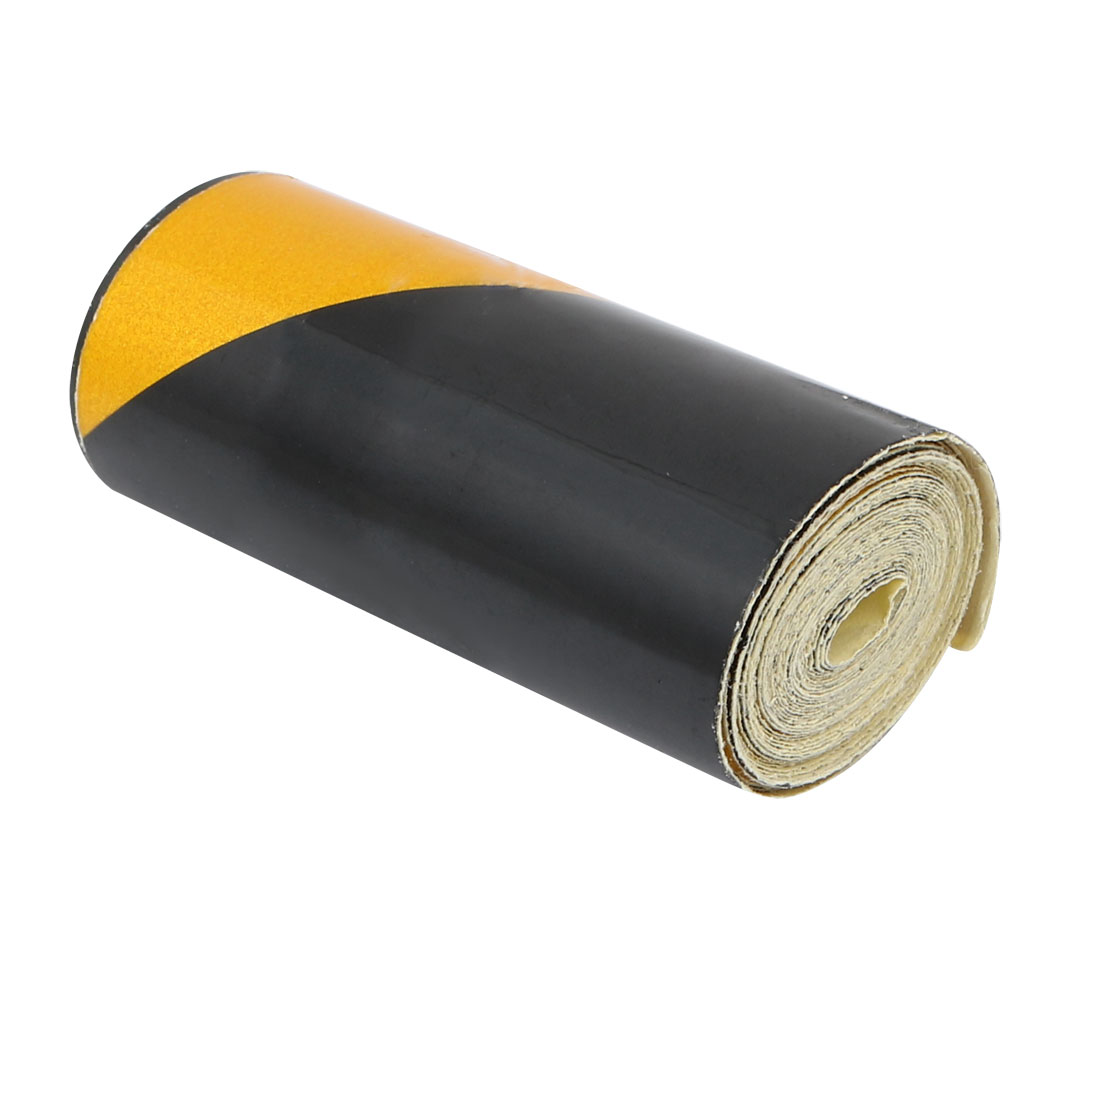 5cm Wide 1.5M Long Single Sided Adhesive Reflective Warning Tape Yellow Black